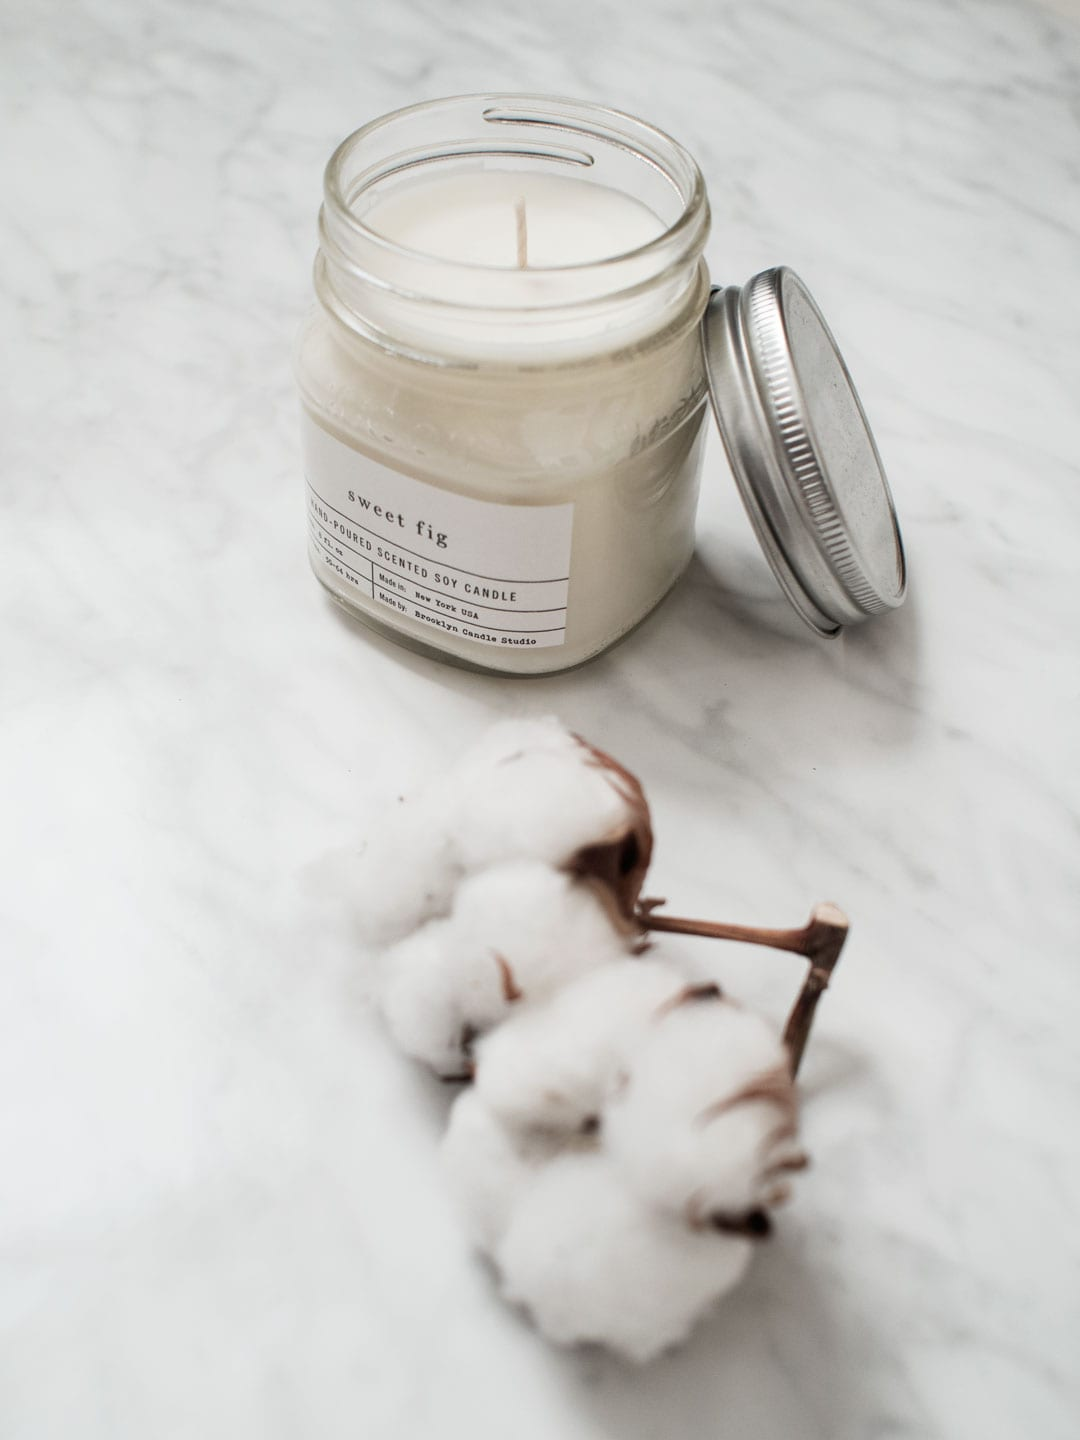 Best Face Masks & Treatments | Wood/Grey Sweet Fig Soy Candle